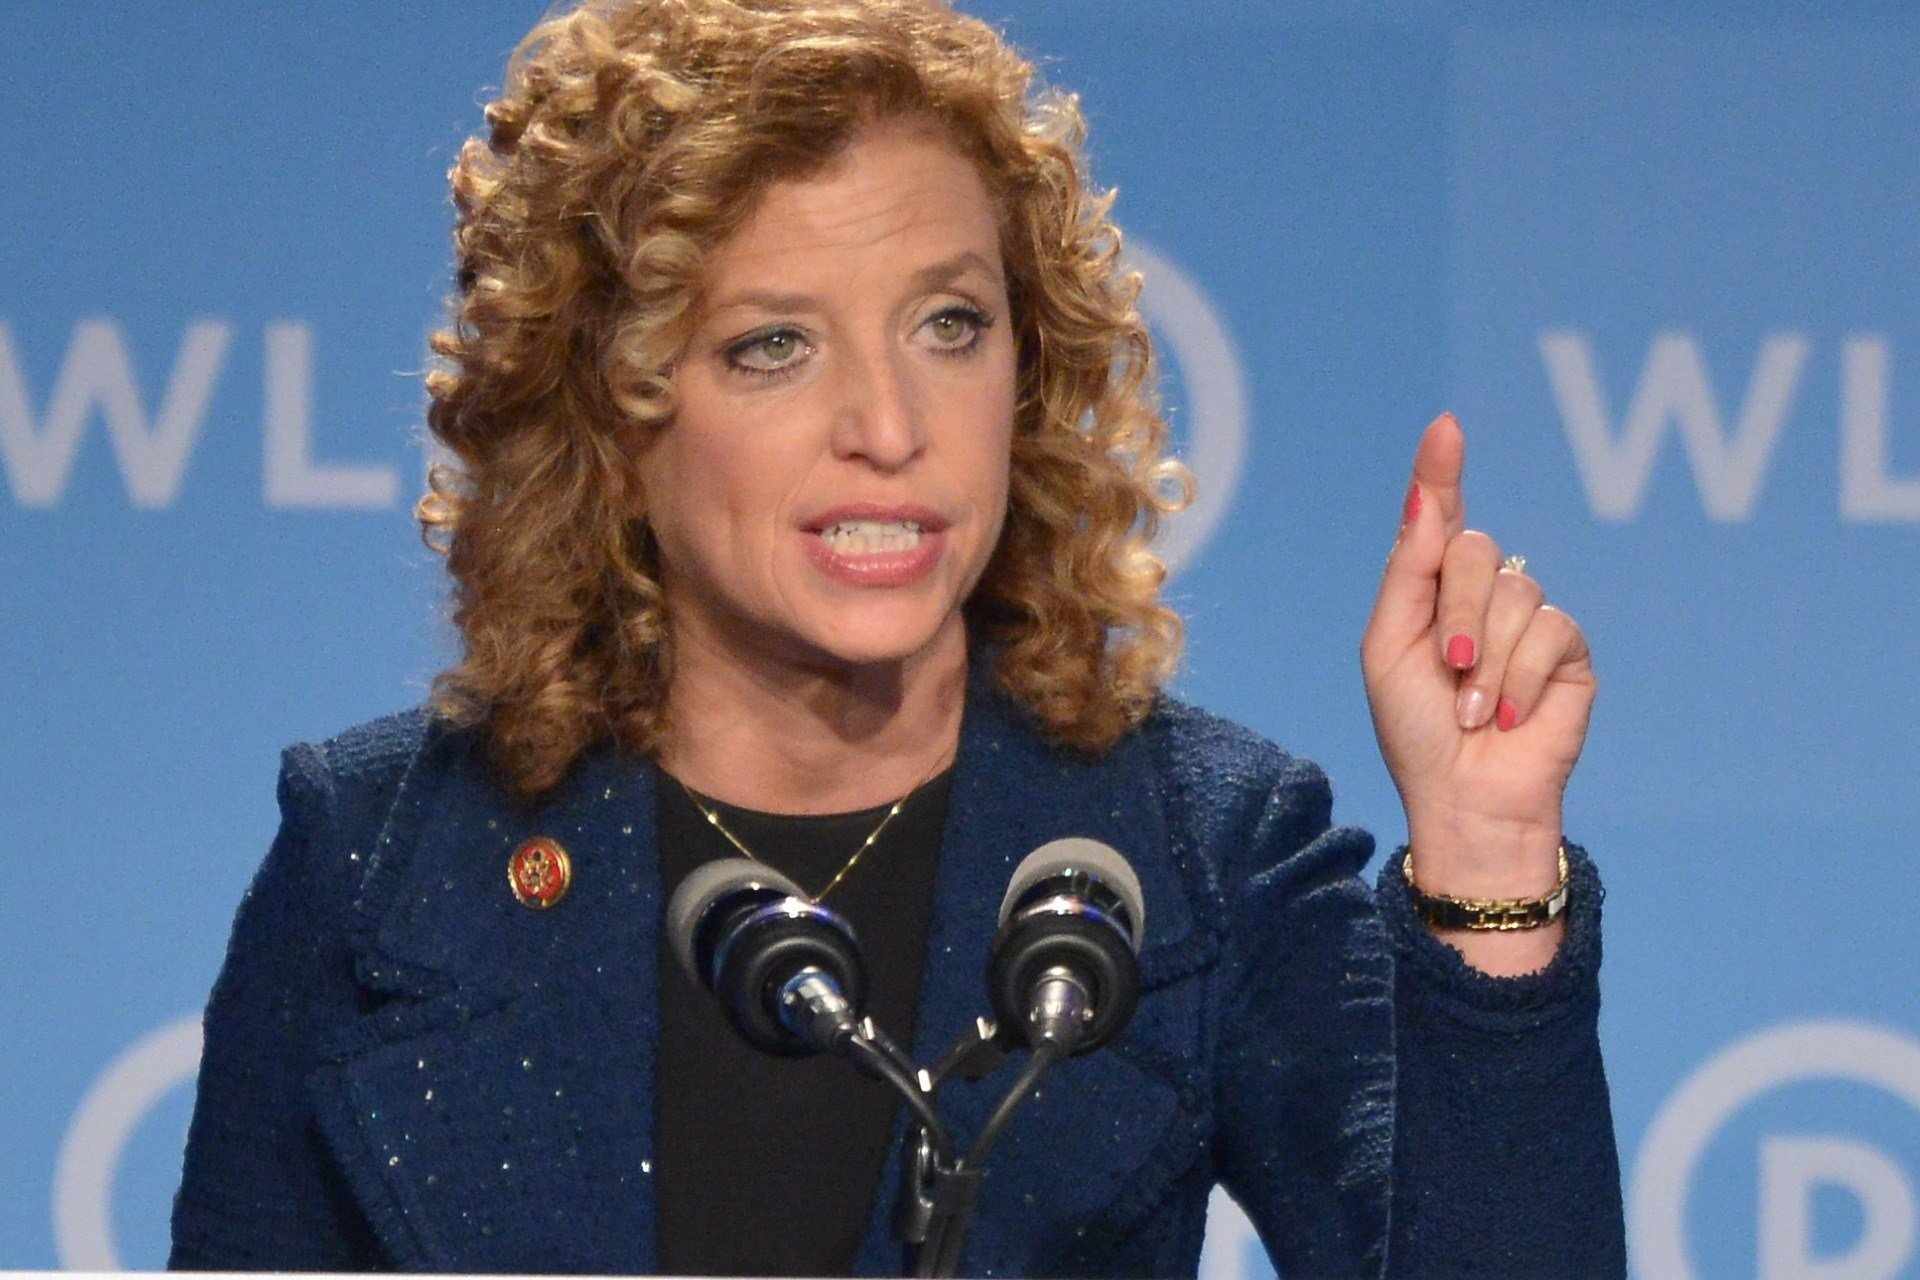 Democratic National Committee (DNC) Chair, Representative Debbie Wasserman Schultz, Democrat of Florida, speaks at the DNC's Leadership Forum Issues Conference in Washington on Sept. 19, 2014.